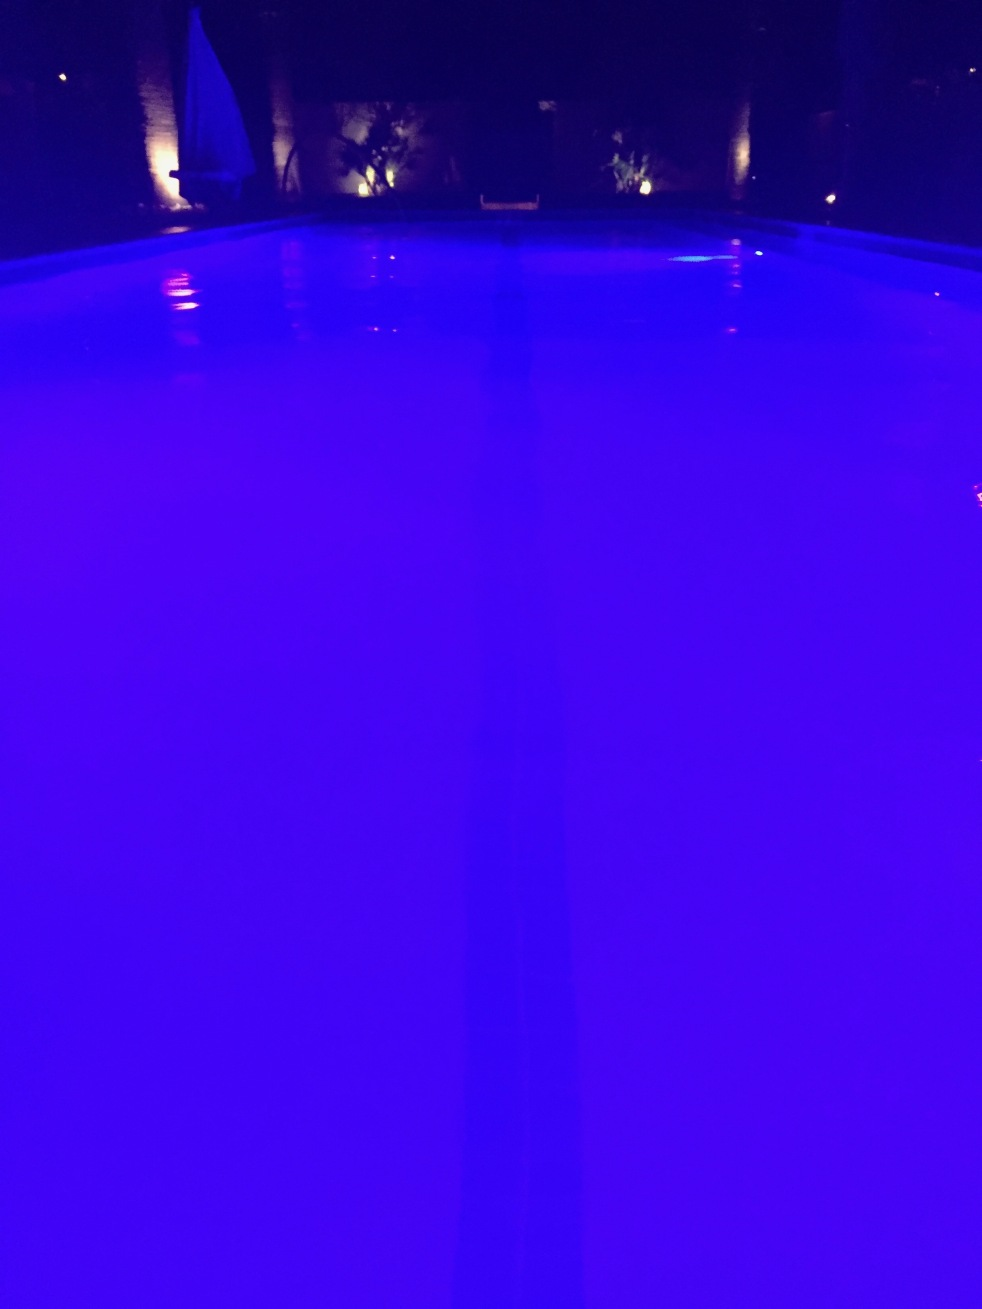 A blue pool at night.